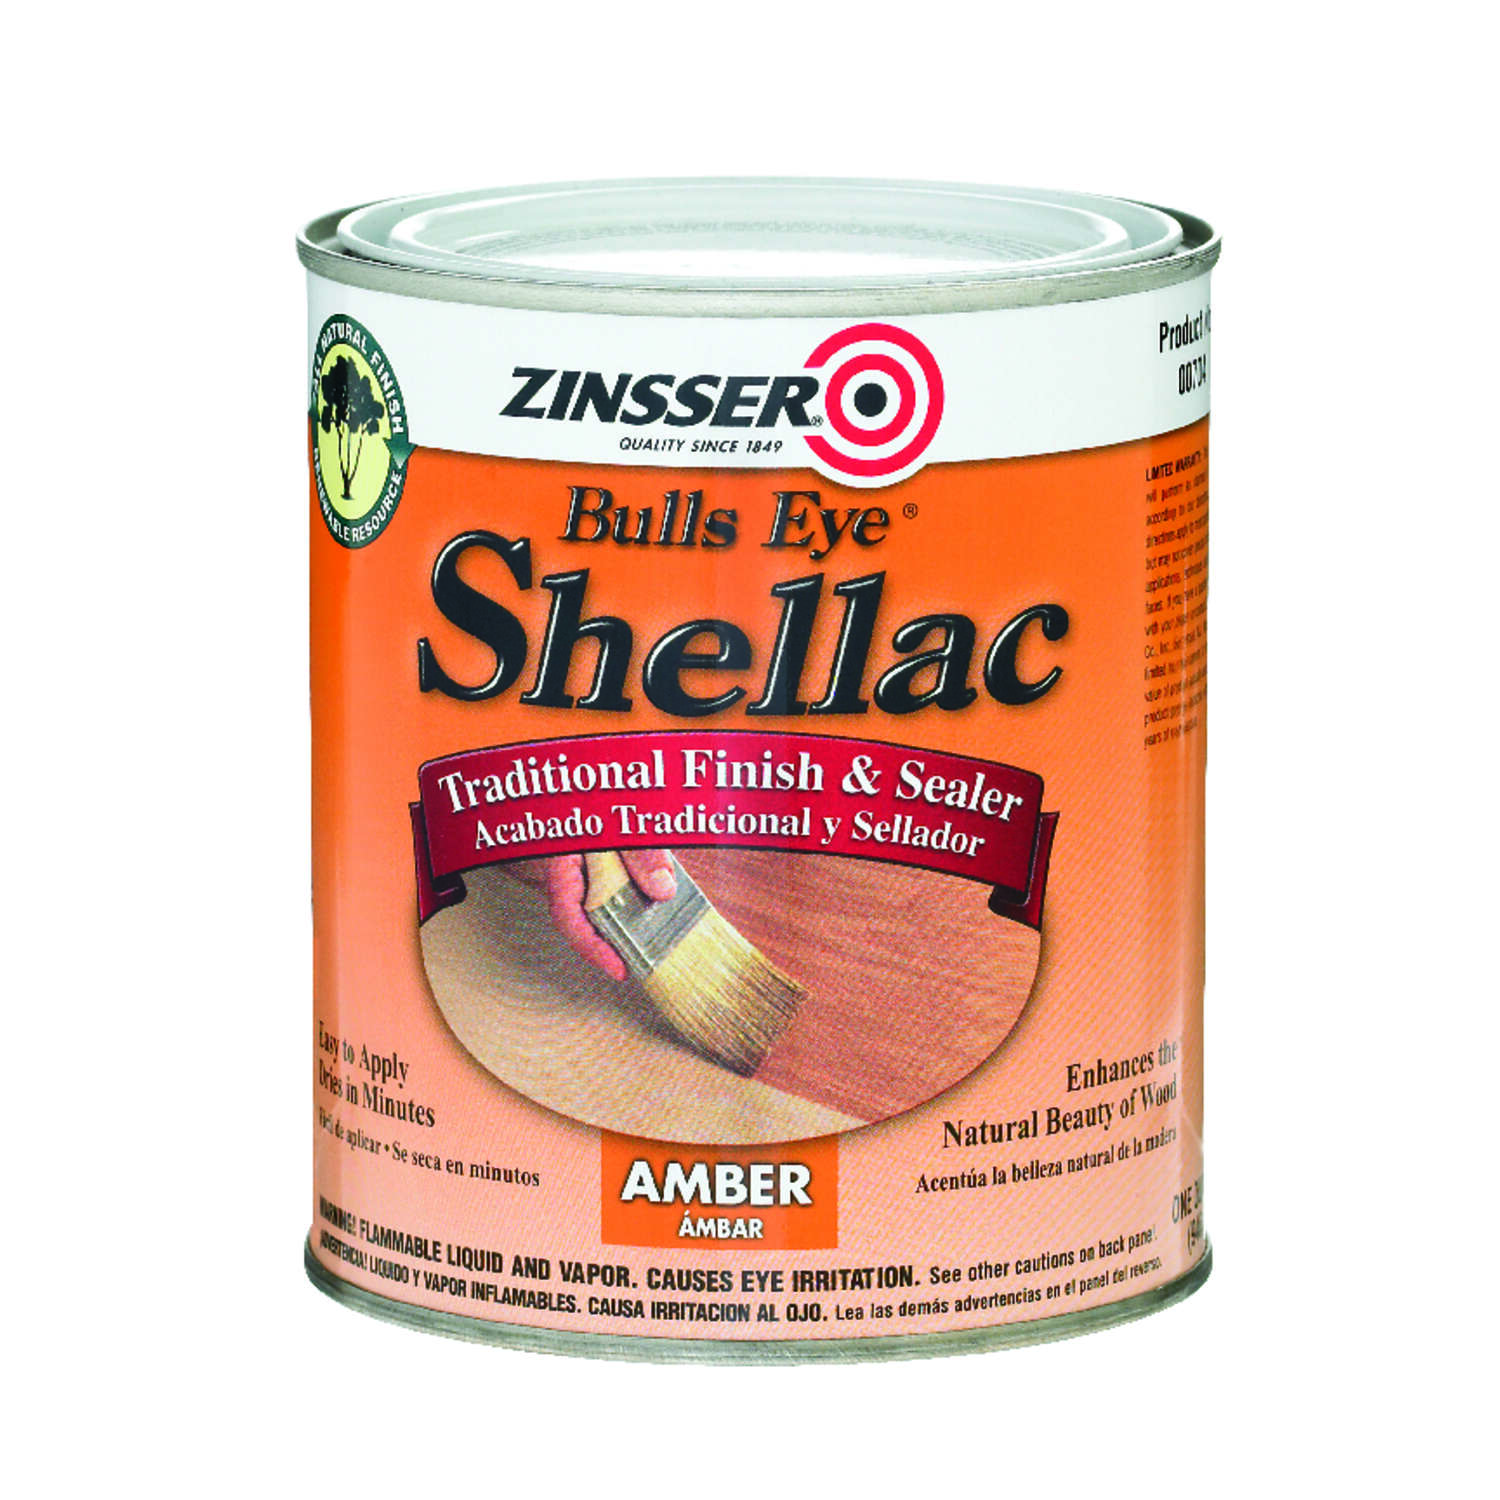 Zinsser  Bulls Eye   Amber  Shellac  Finish and Sealer  1 qt.